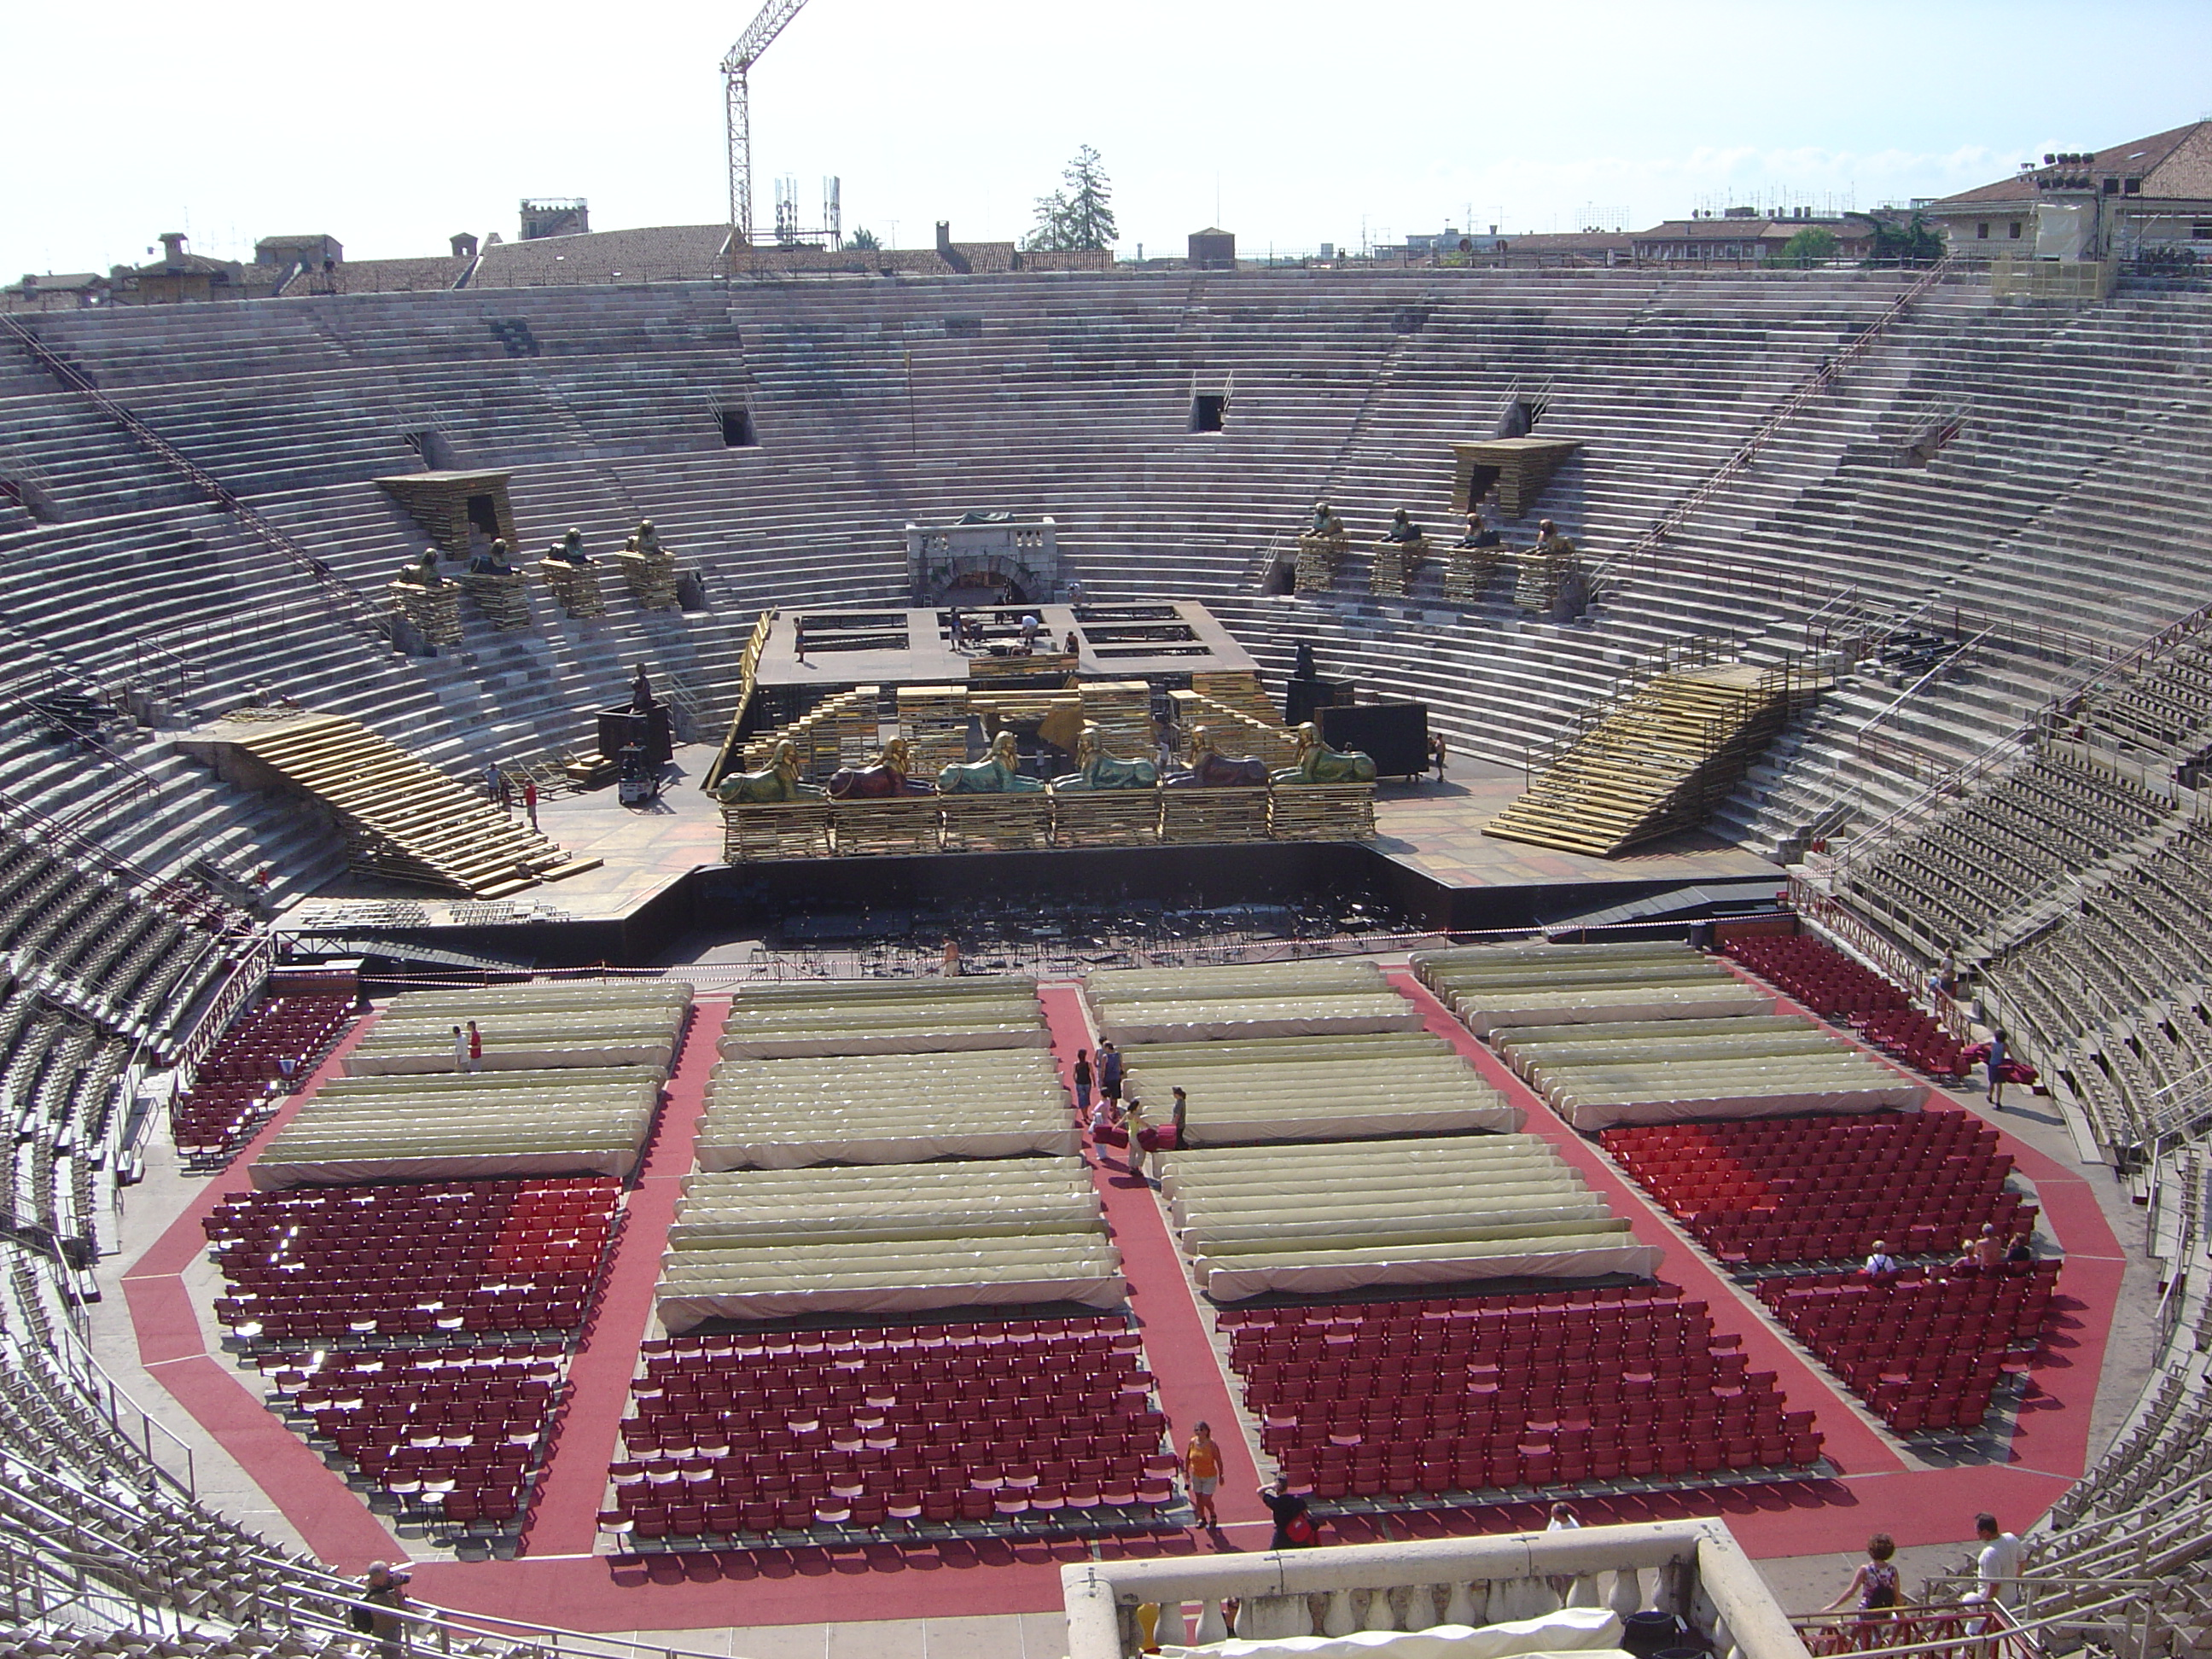 #863 Verona Arena, Italy | Traveling Tour Guide